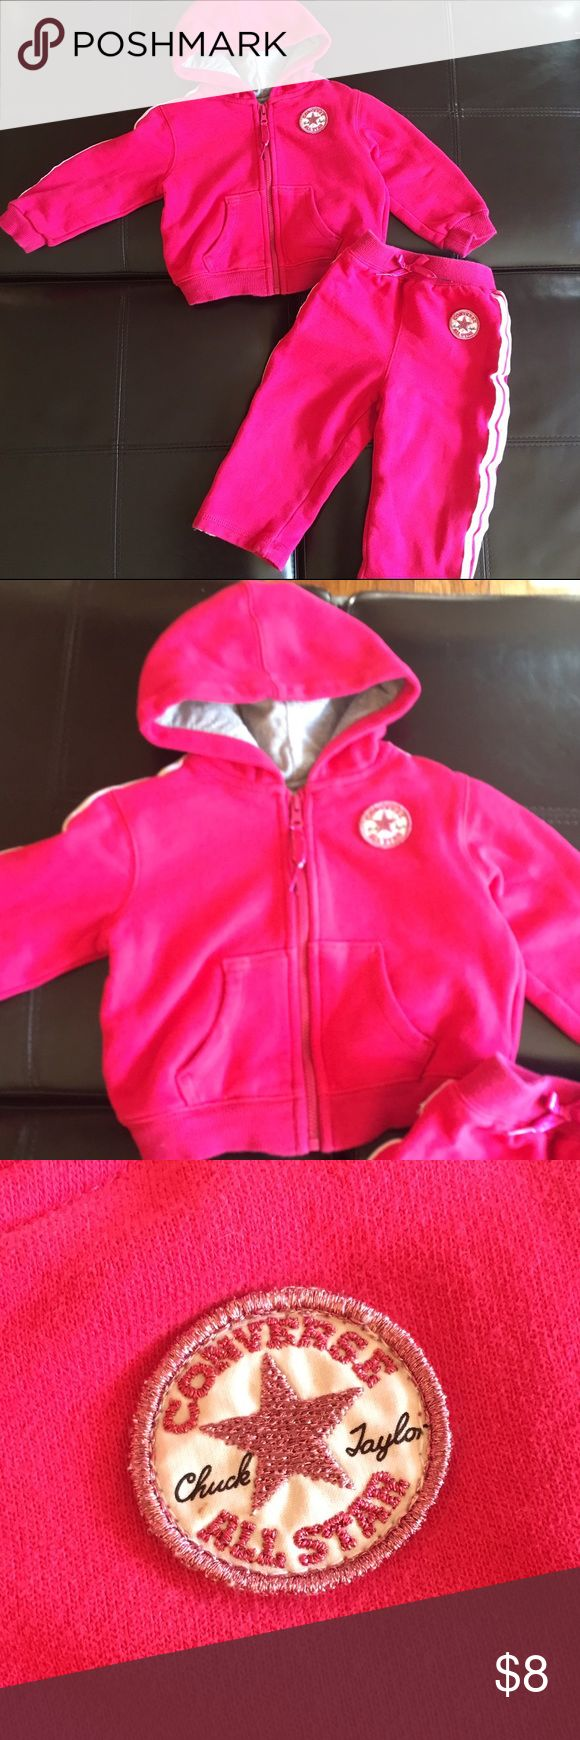 Converse Outfit Cute pink converse hoodie with matching pants. Excellent condition! Bundle and save! Converse Matching Sets